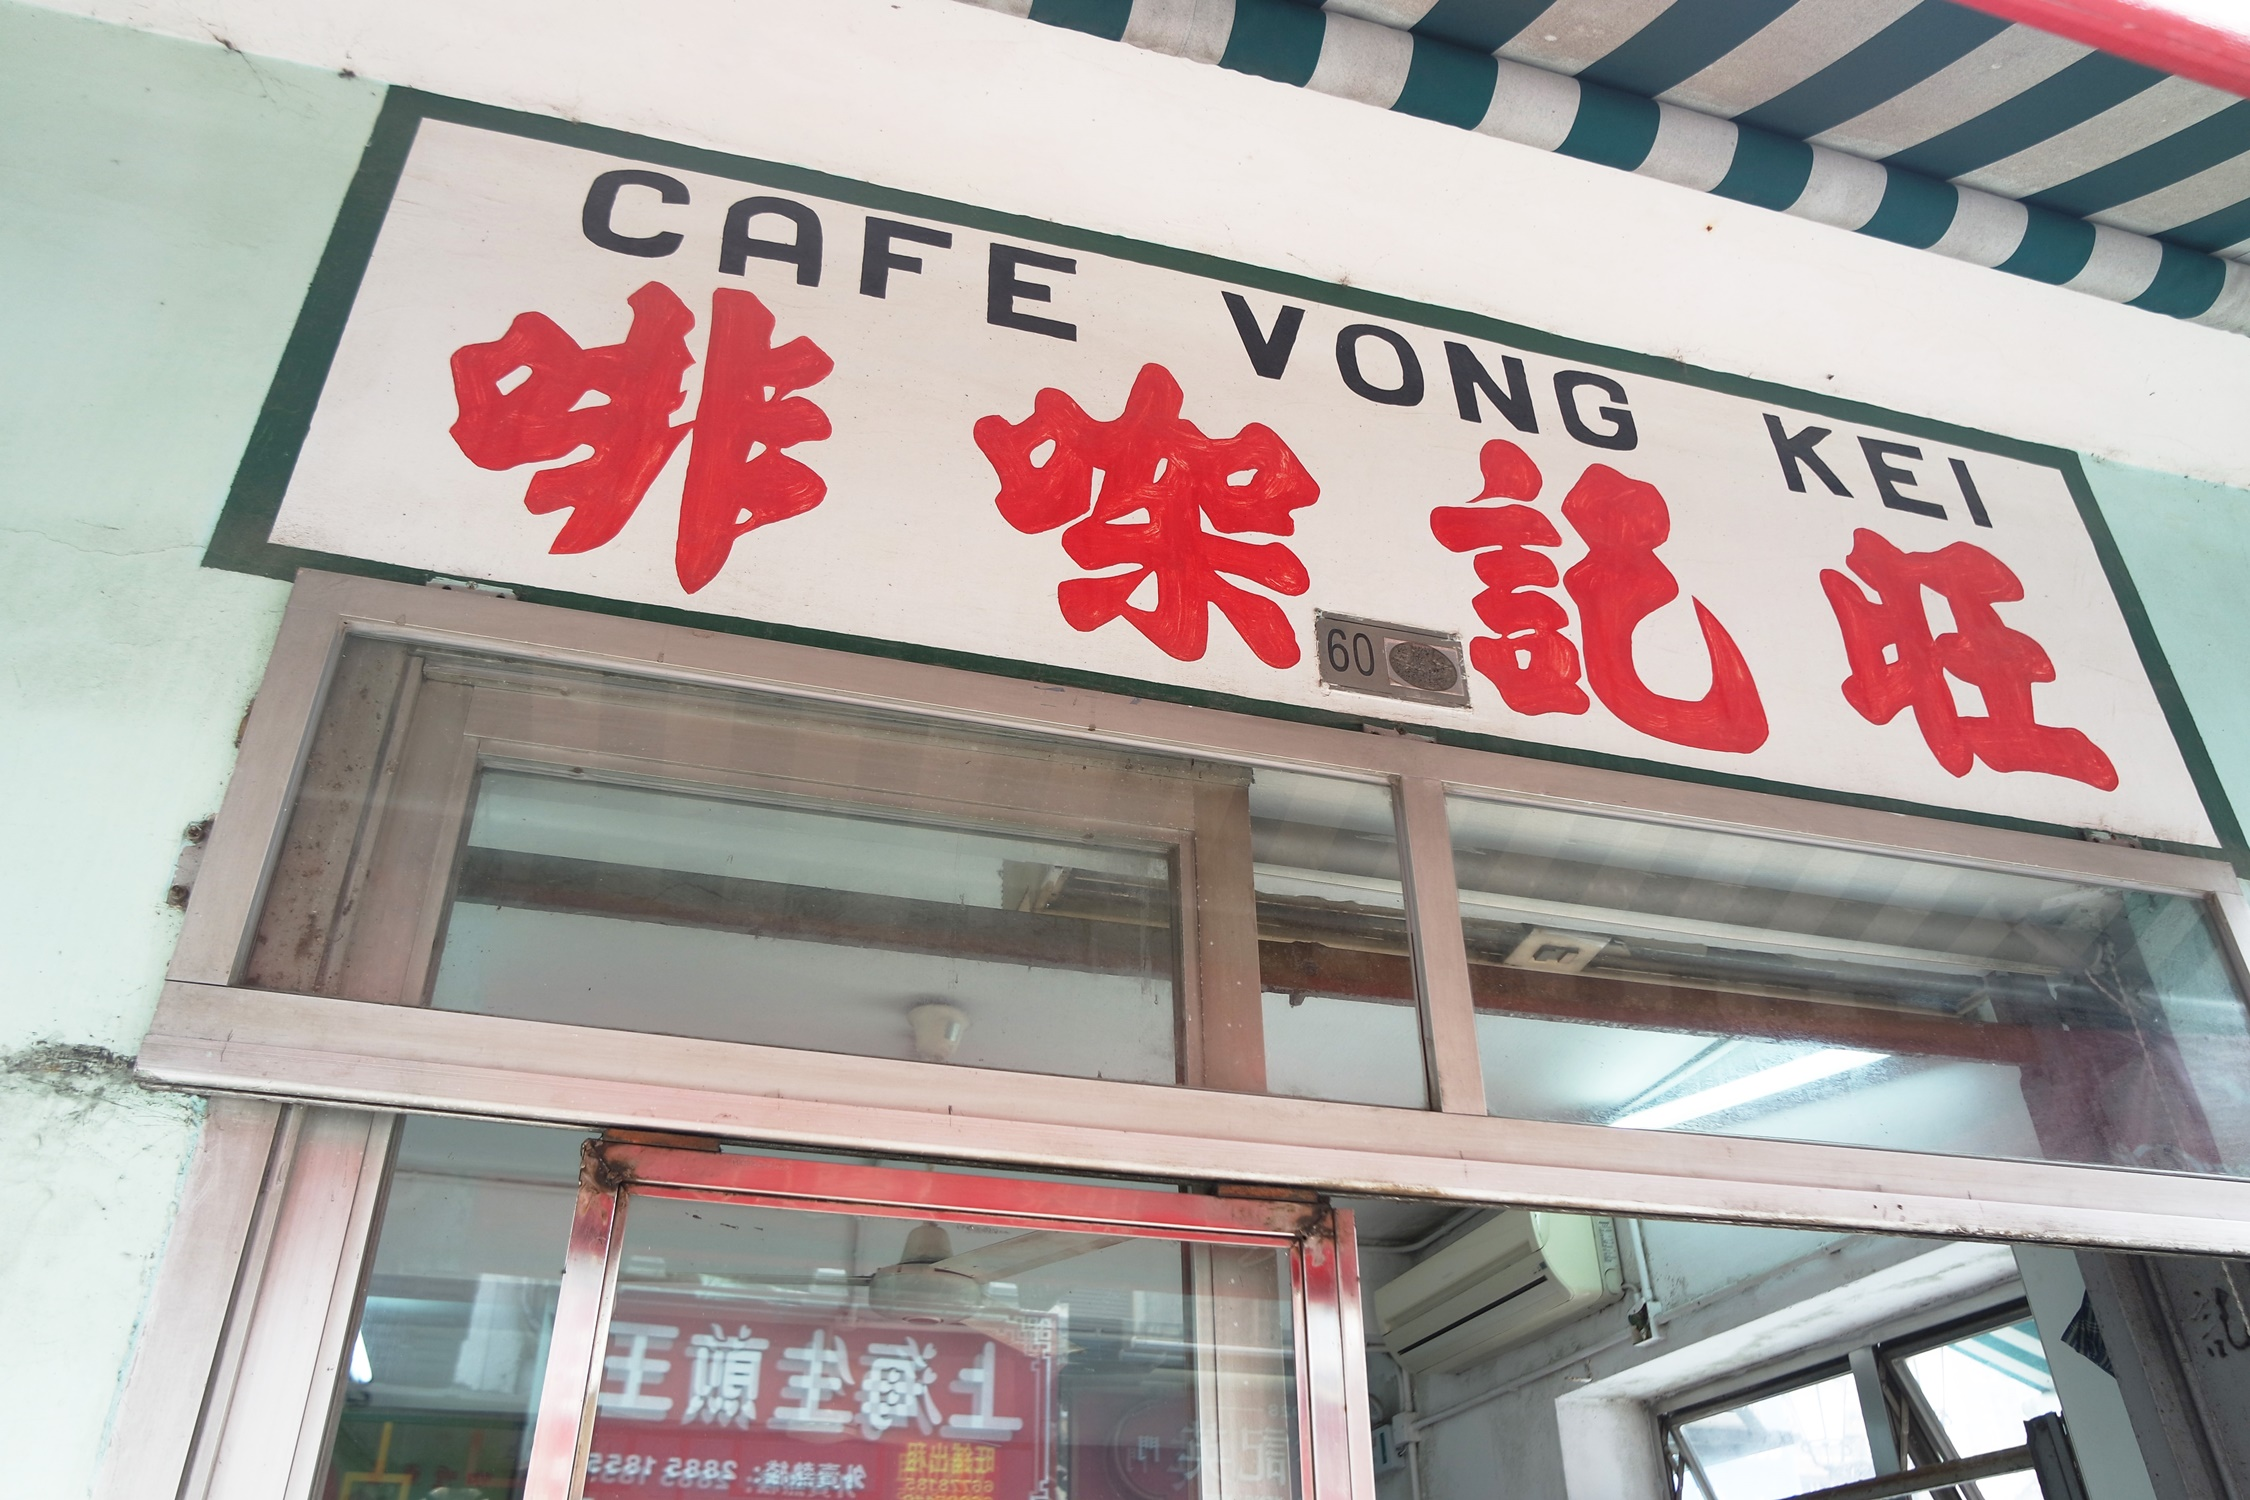 Cafe Vong Kei at Old Taipa Village